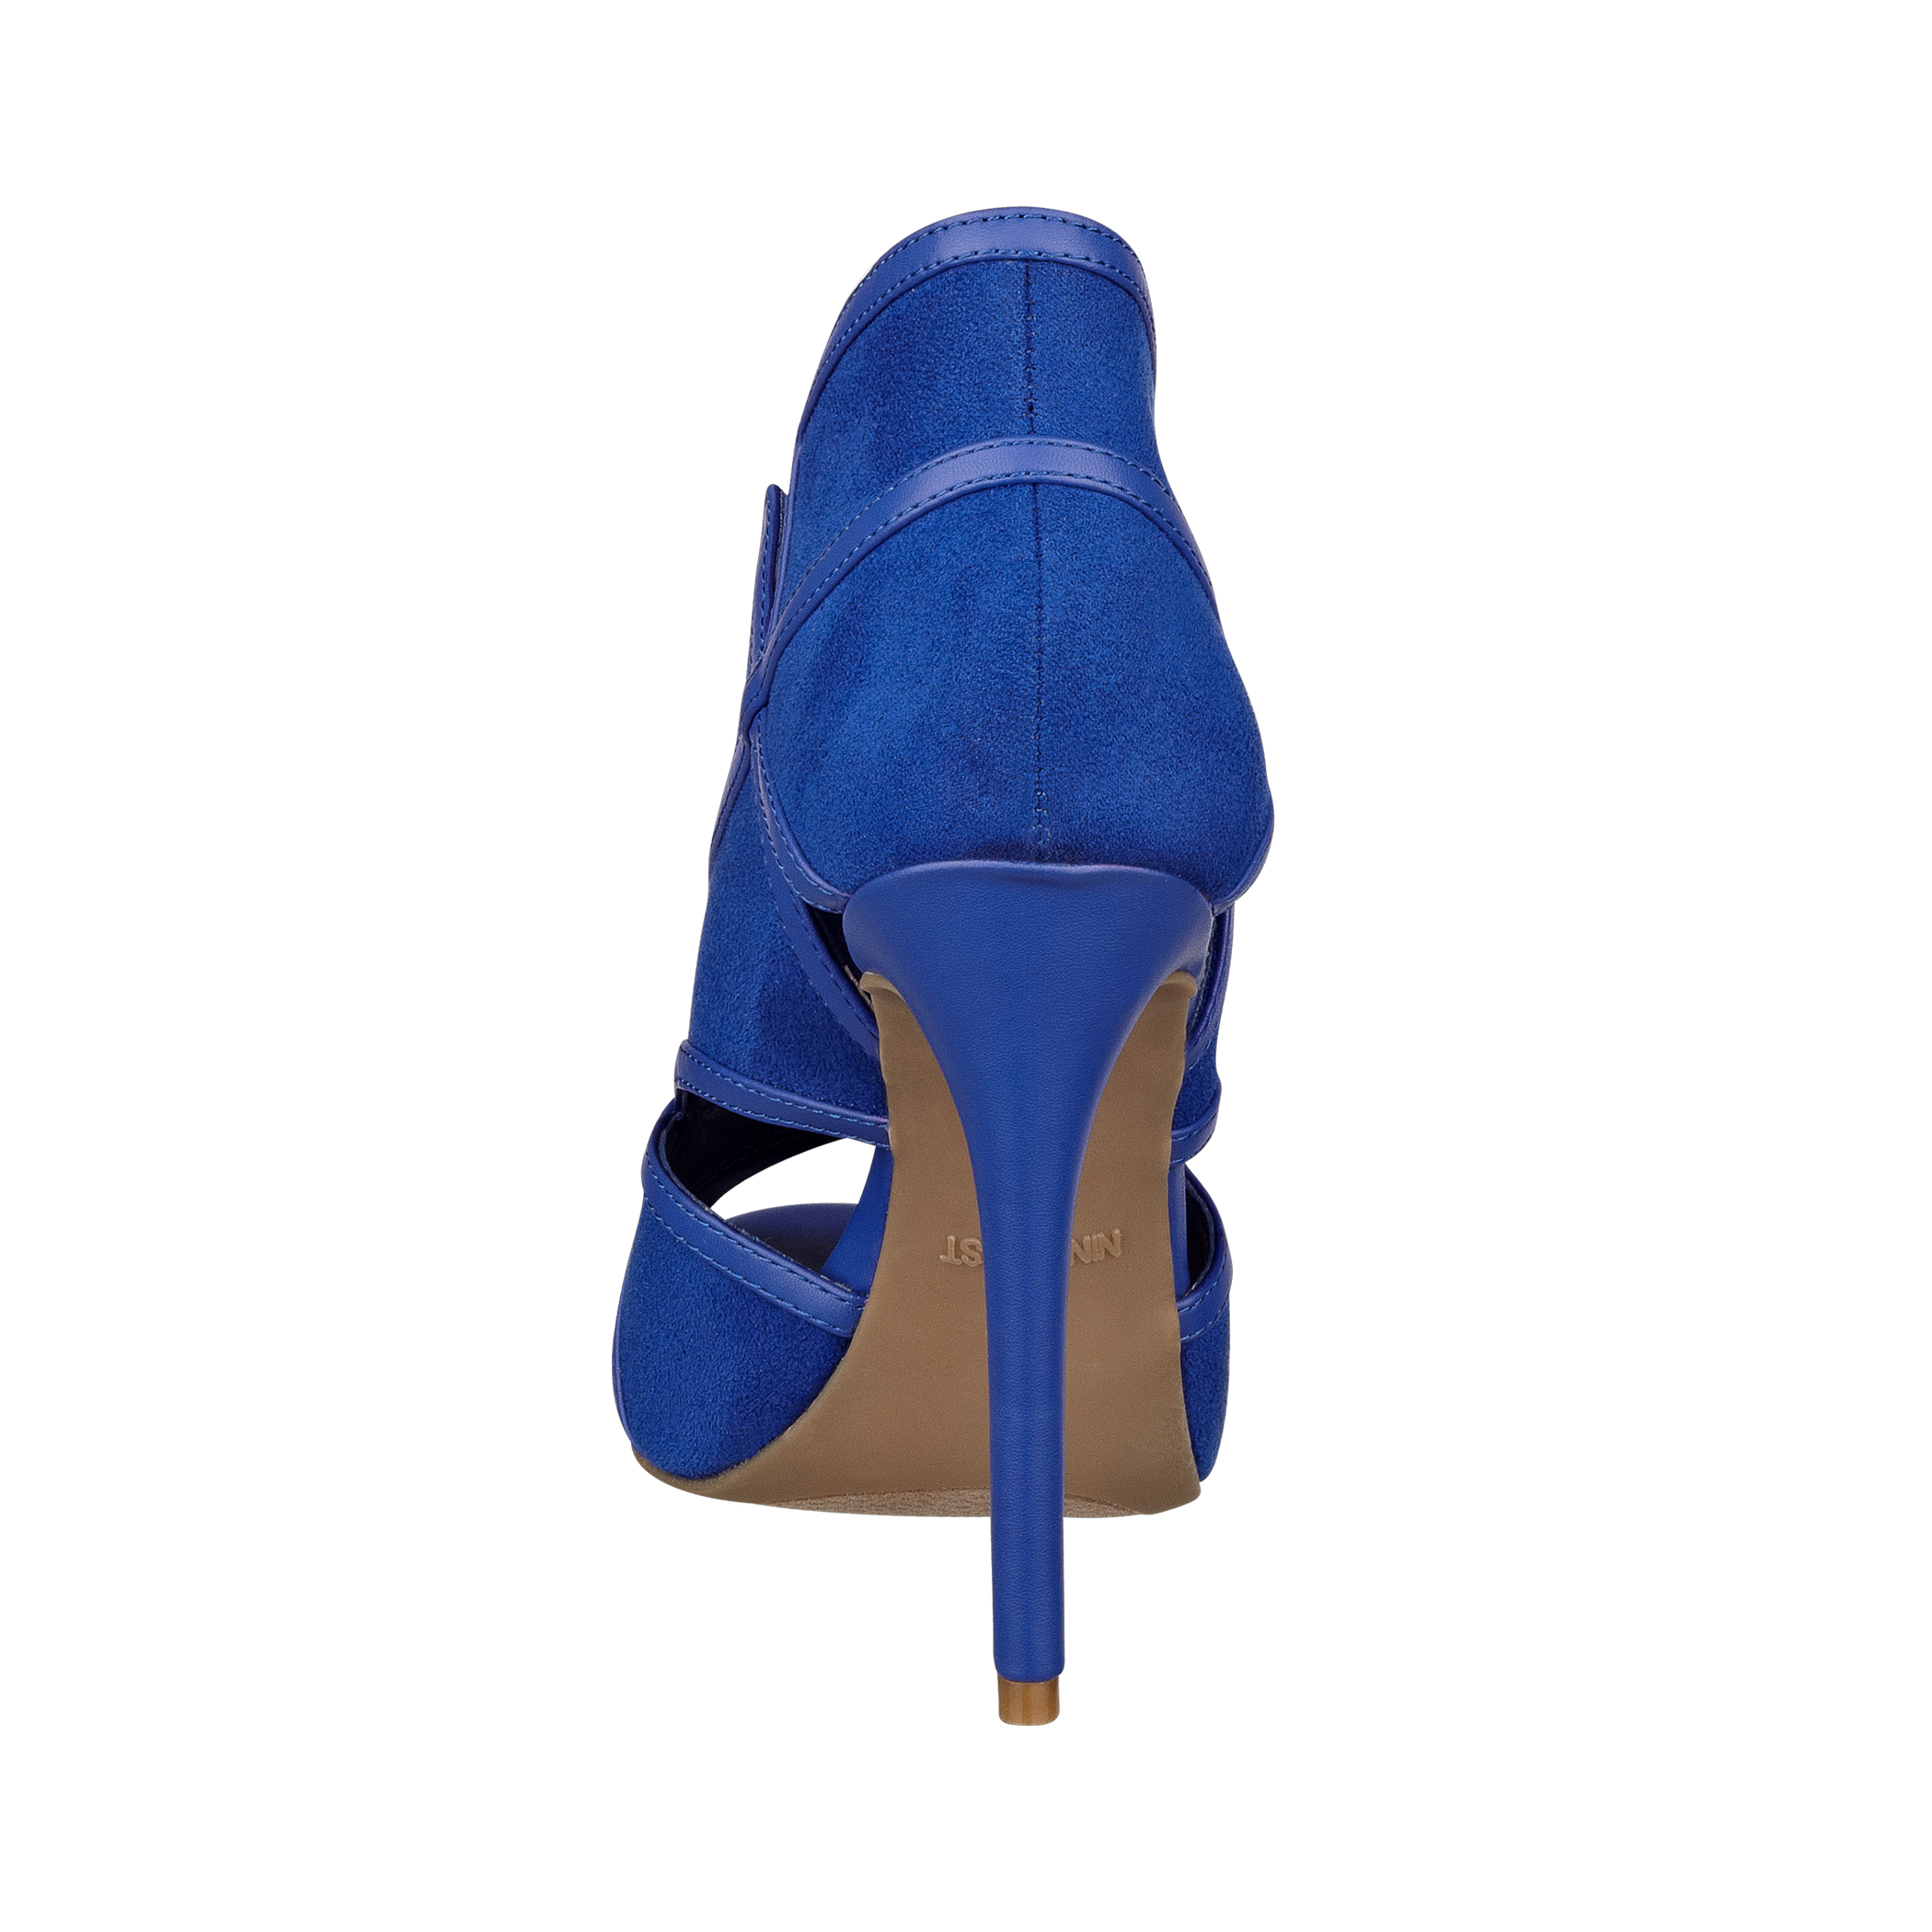 Latest Fashion of Stiletto & Heels Collection for women by Nine West(1)